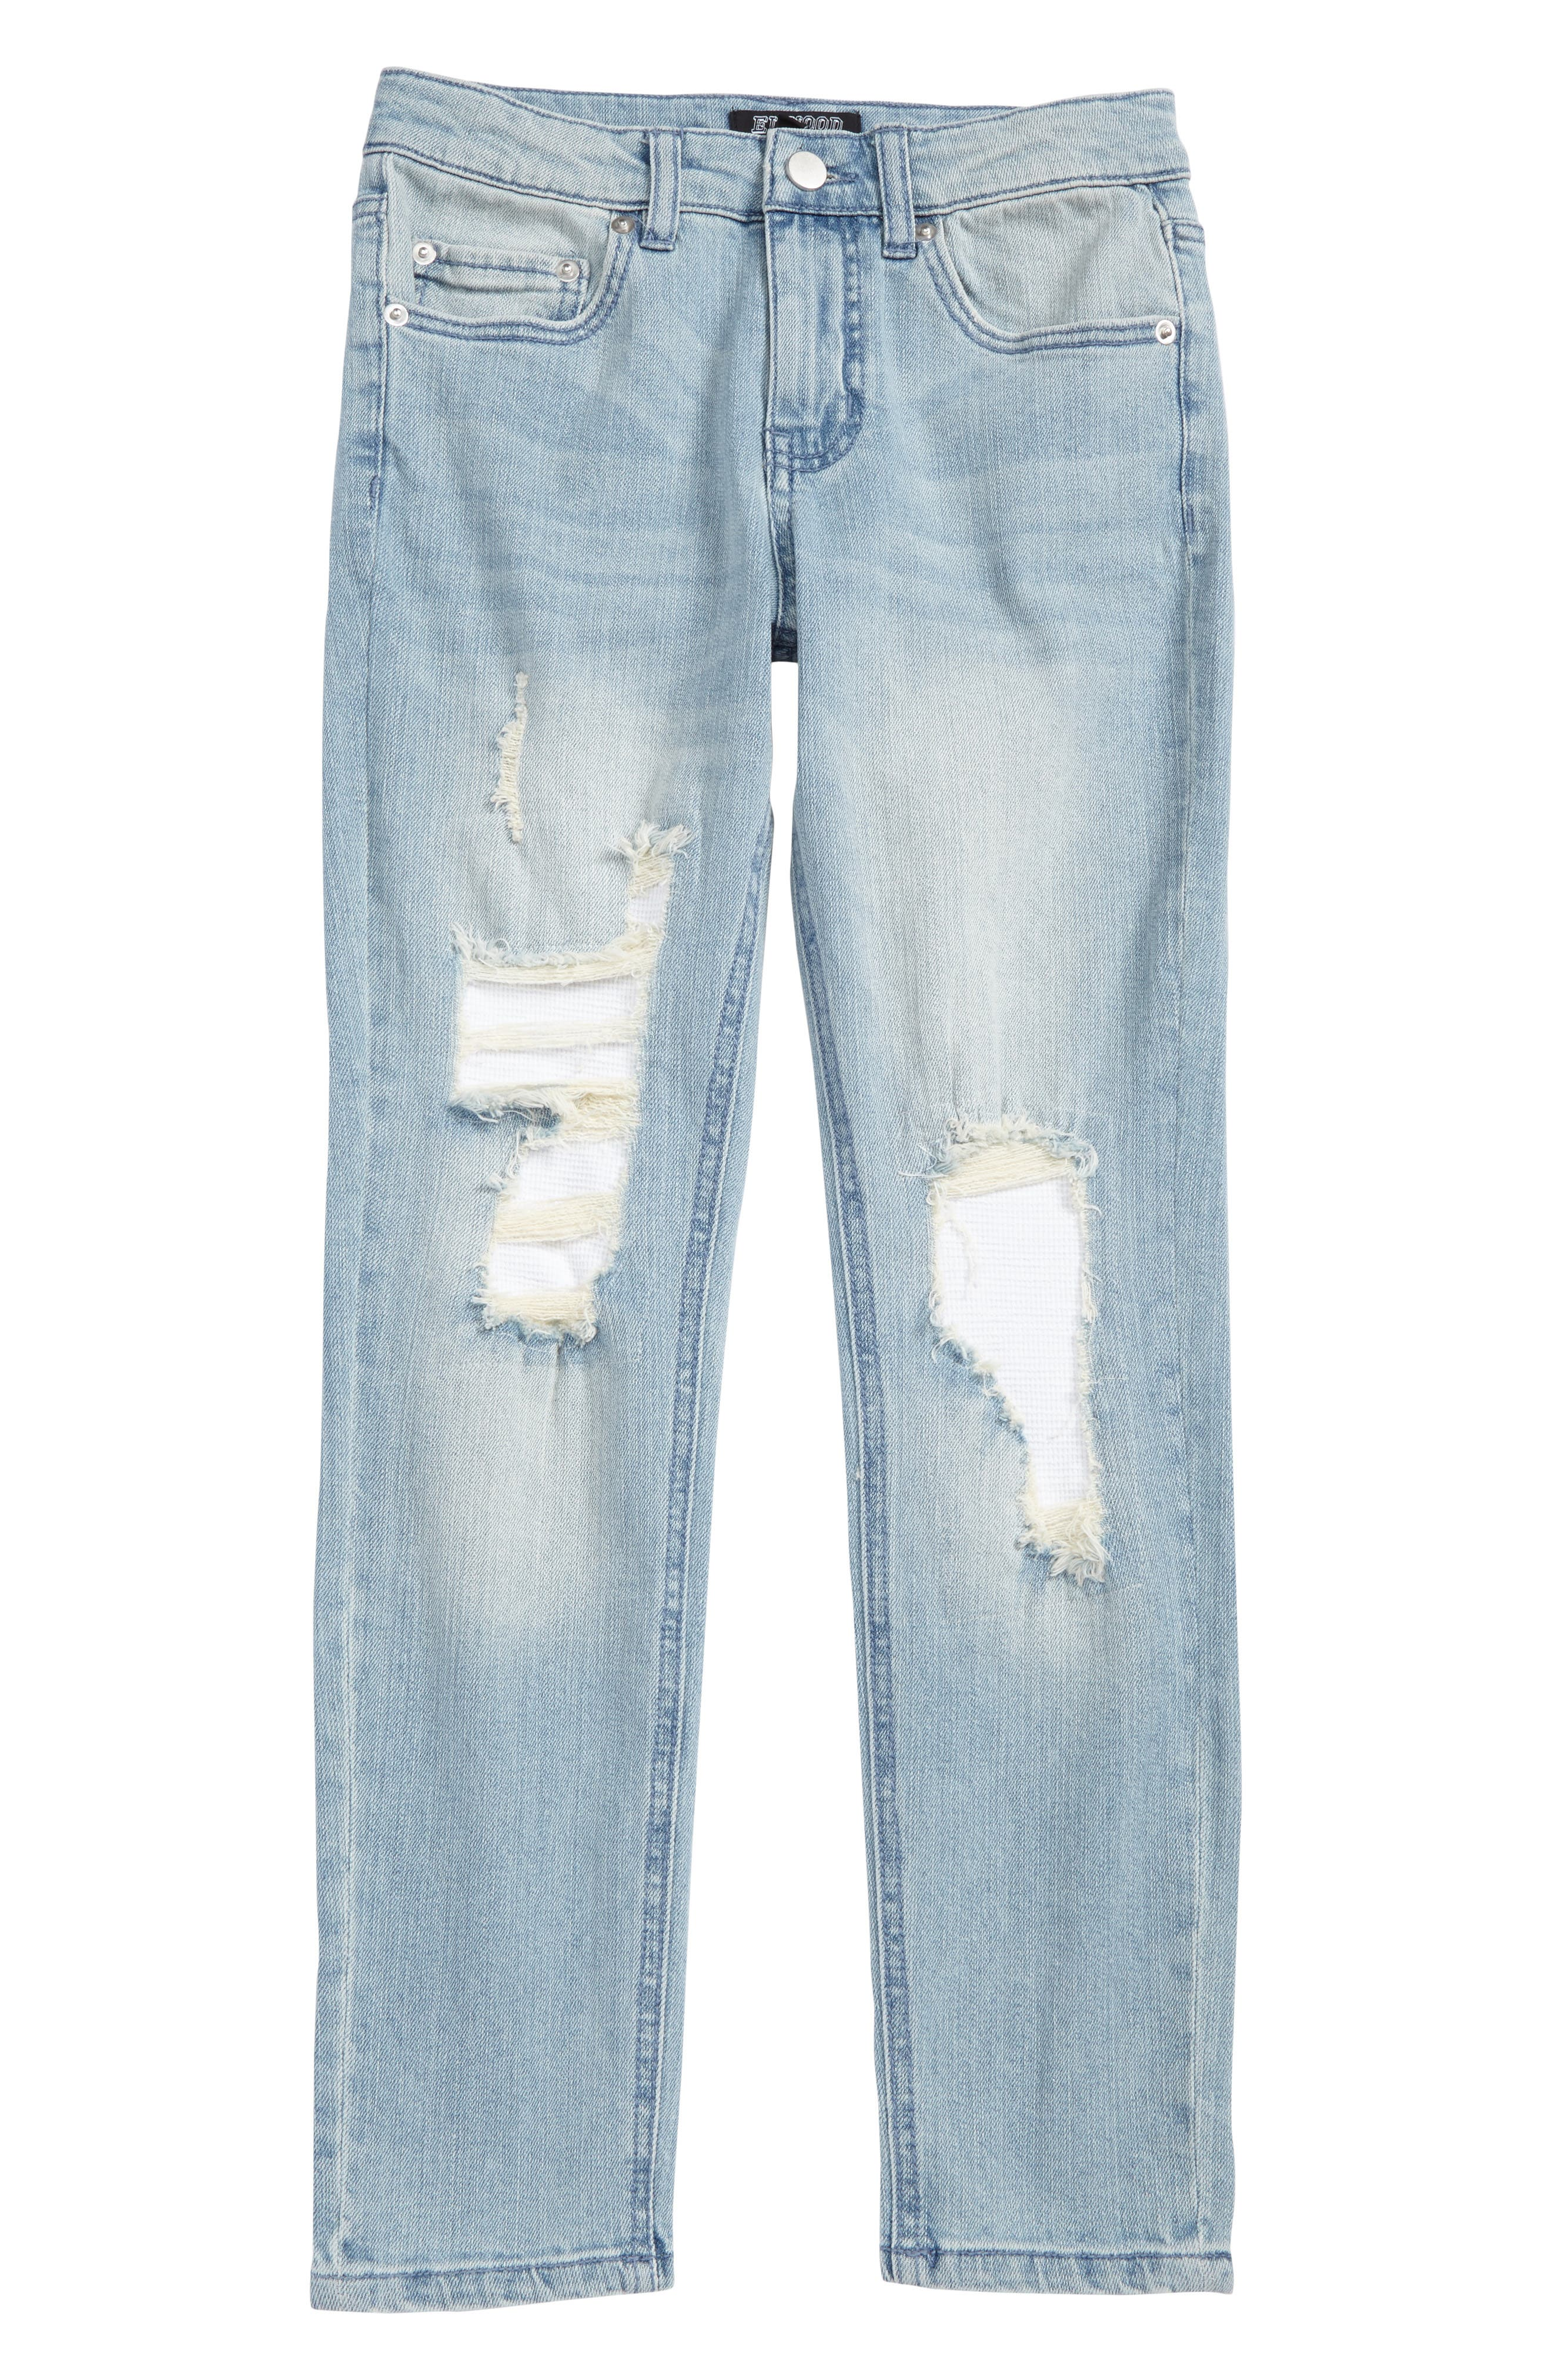 Rip & Repair Straight Leg Jeans,                         Main,                         color, 460